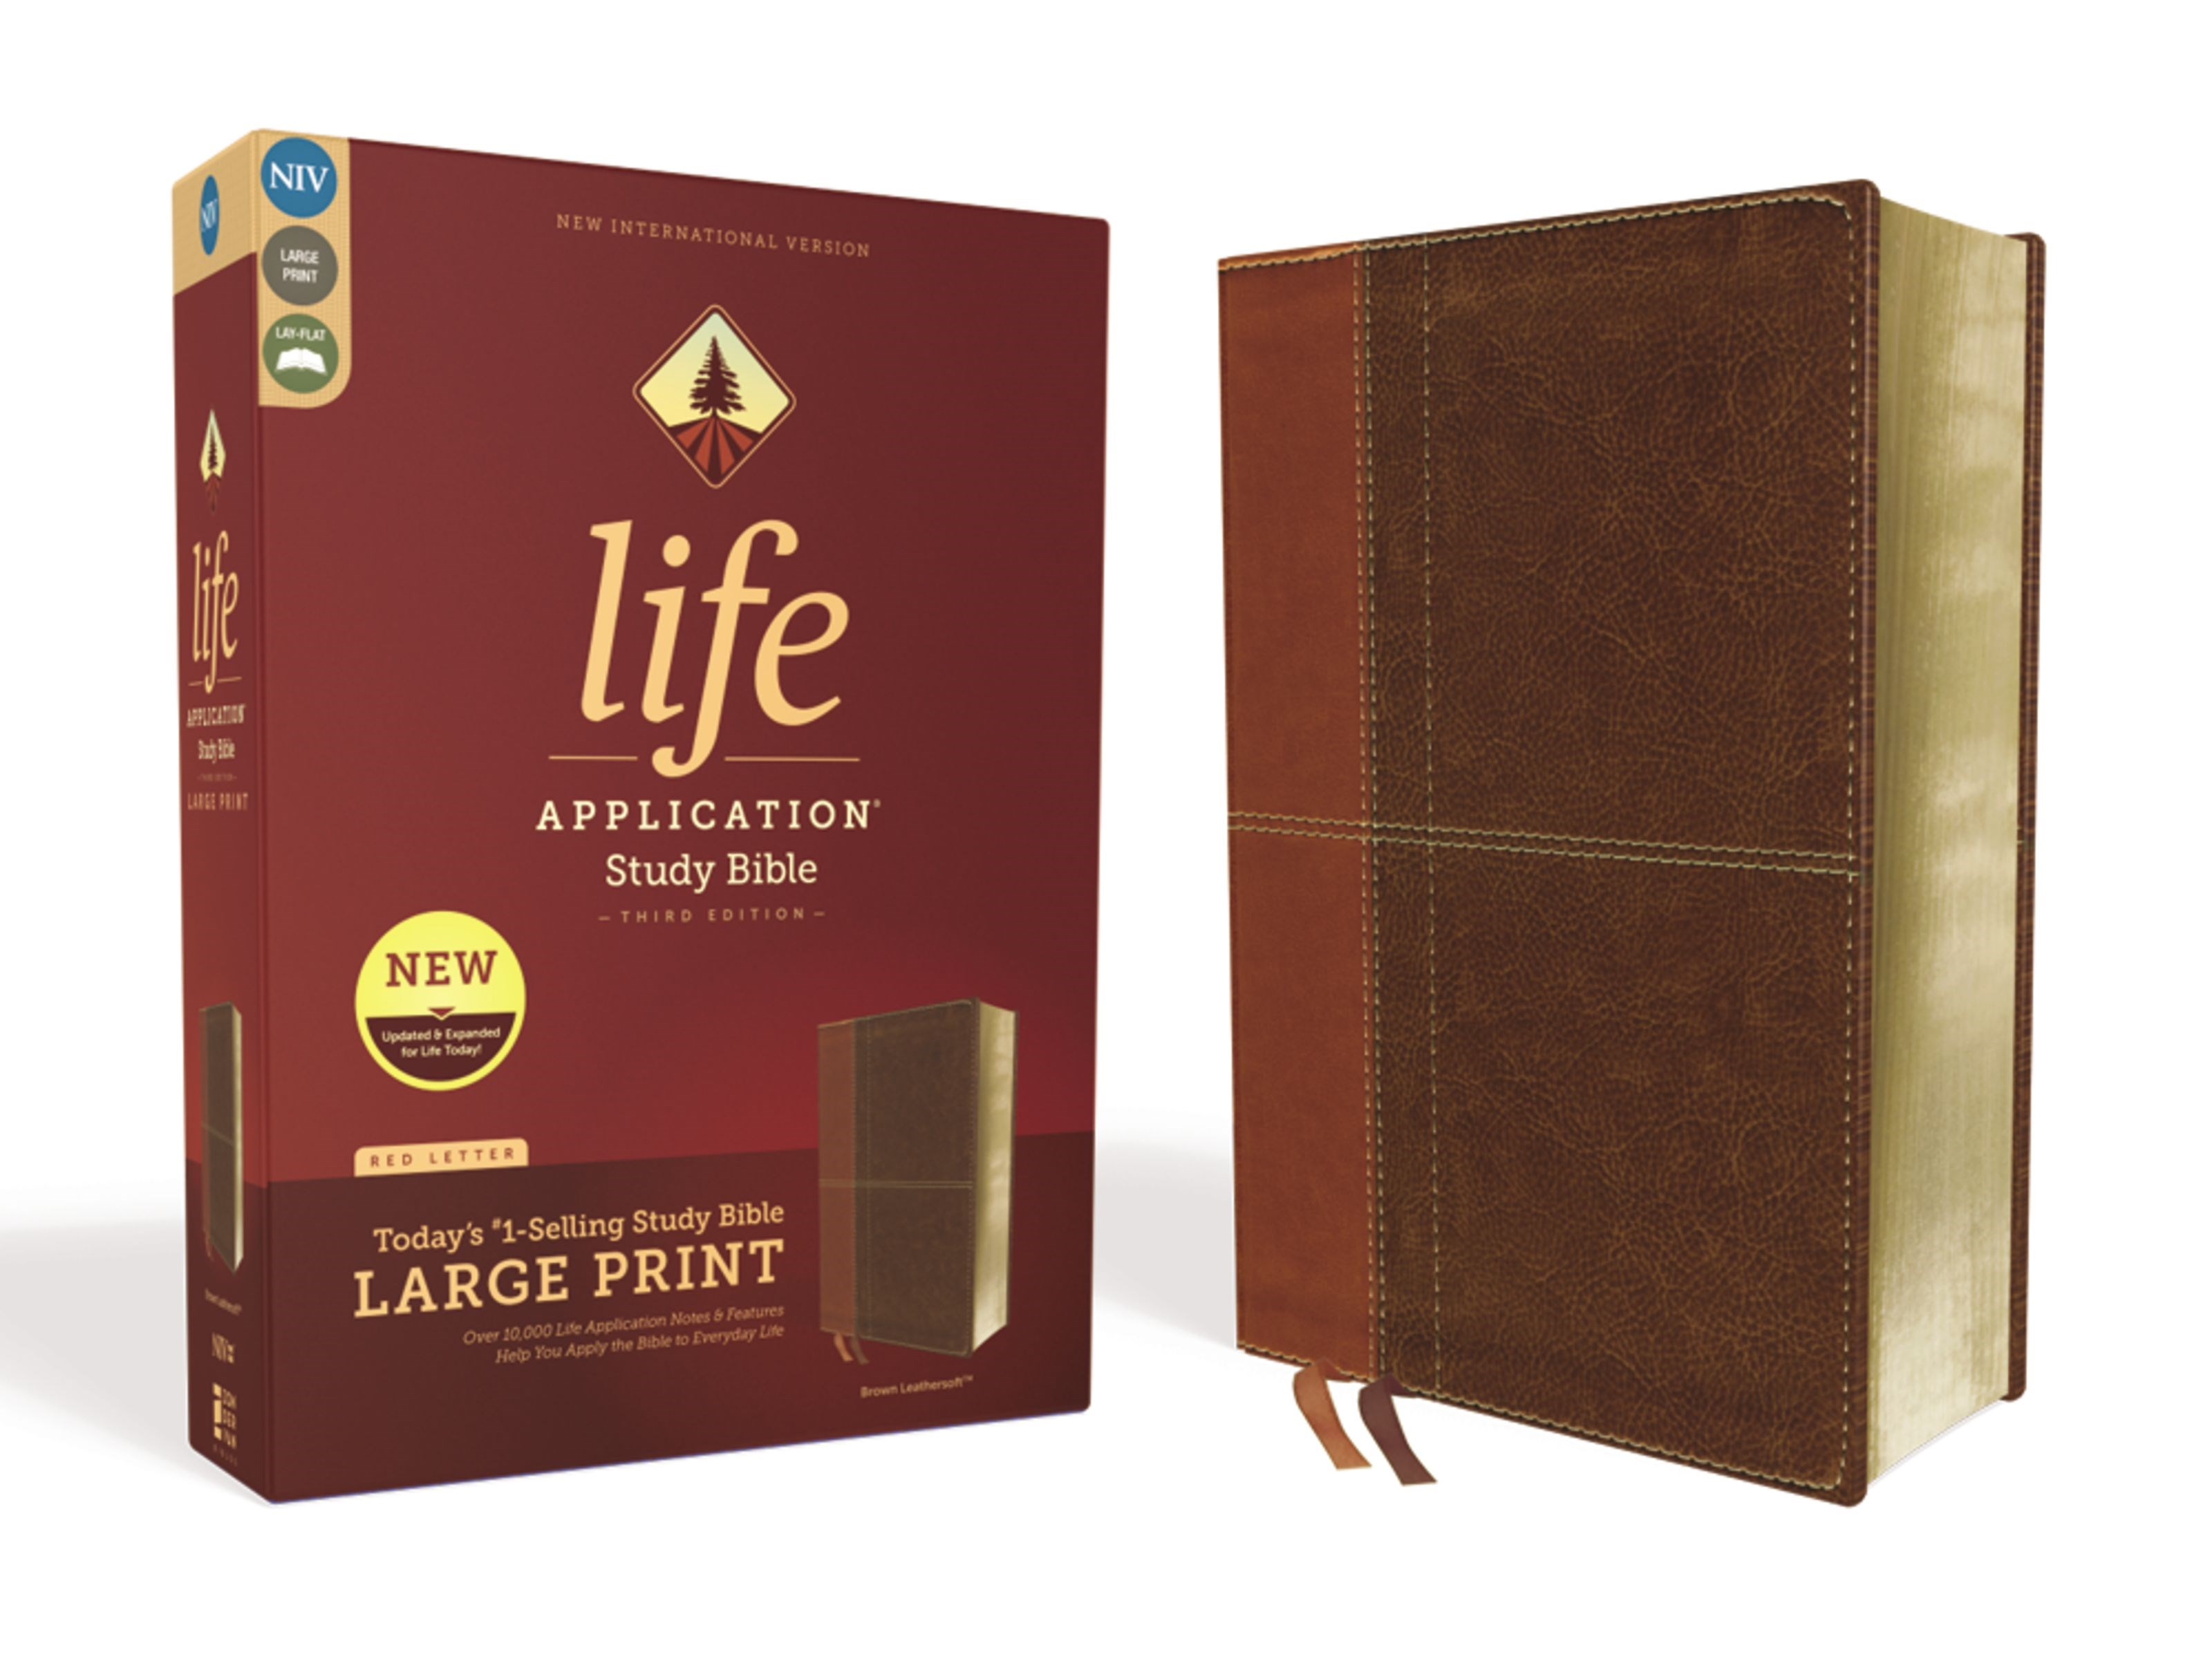 NIV Life Application Study Bible/Large Print (Third Edition)-Brown Leathersoft